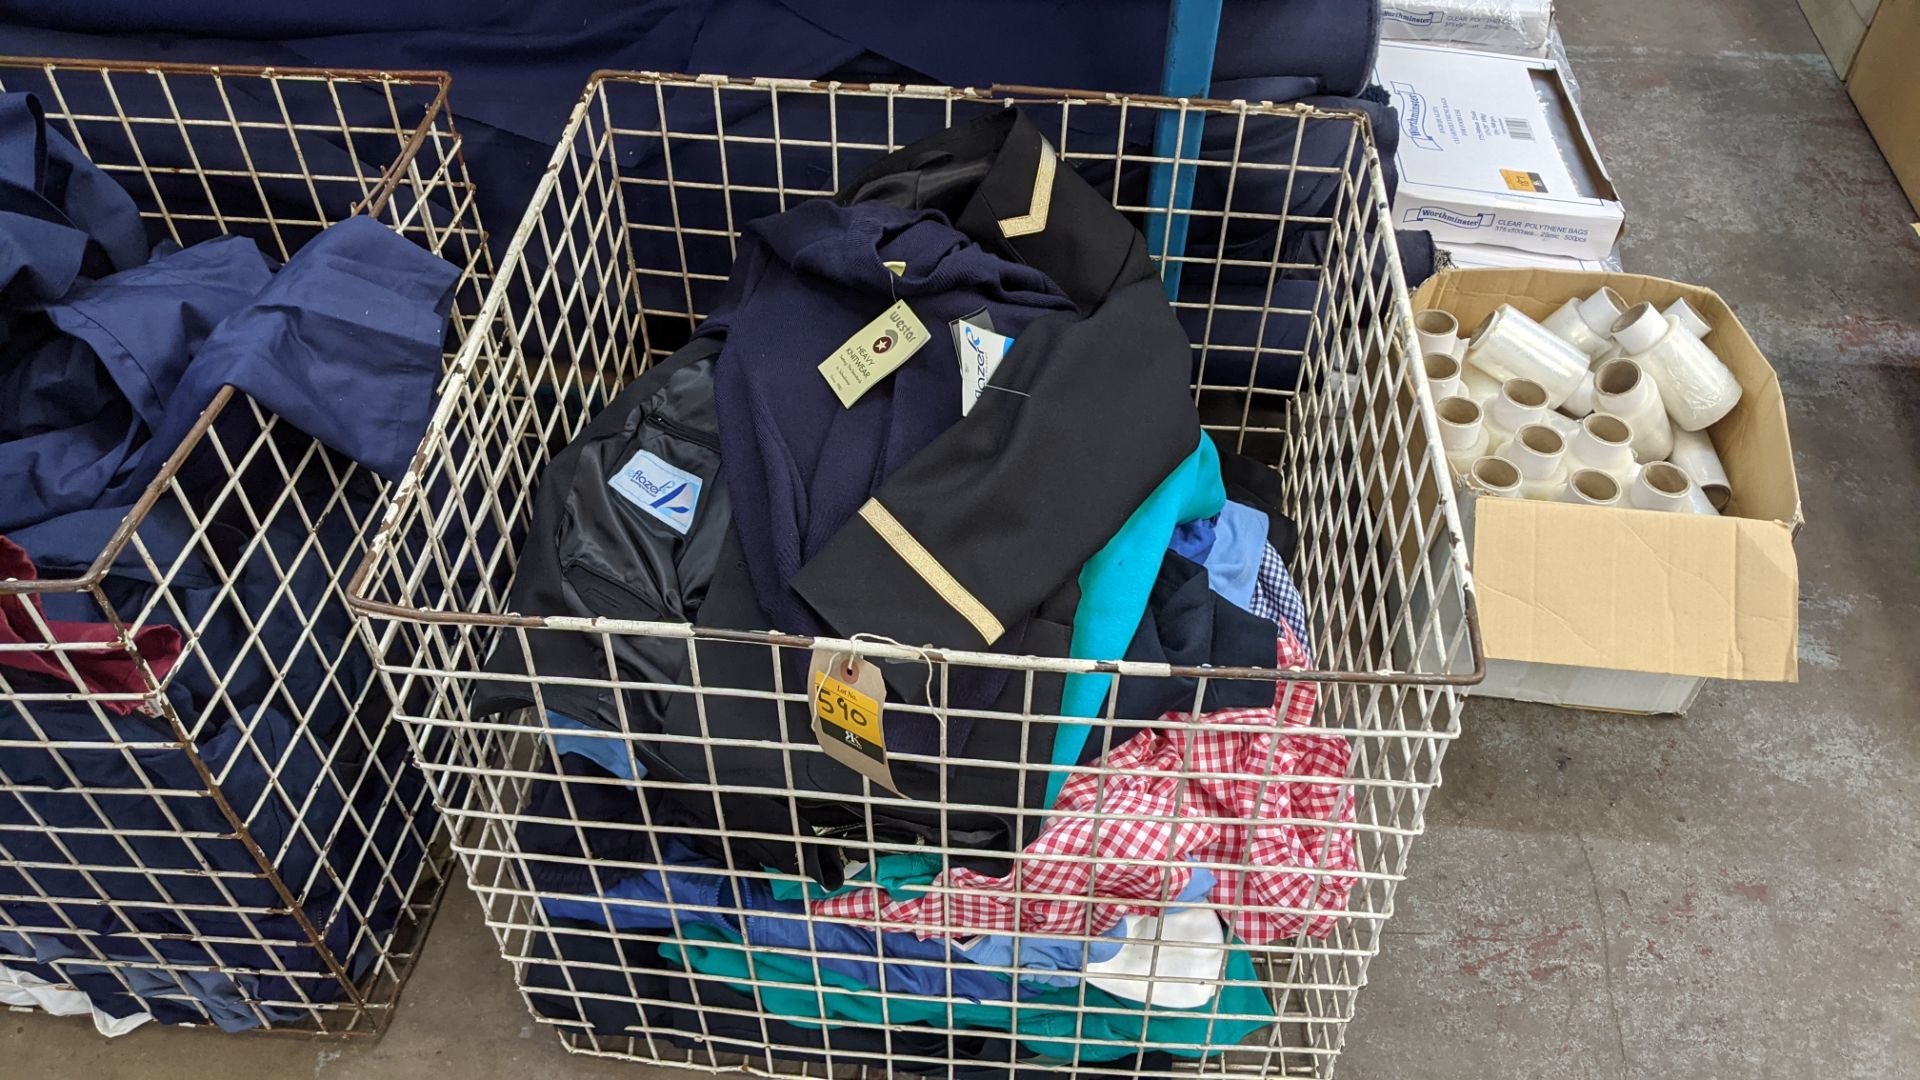 The contents of a cage of children's clothing, sweatshirts, t-shirts & more